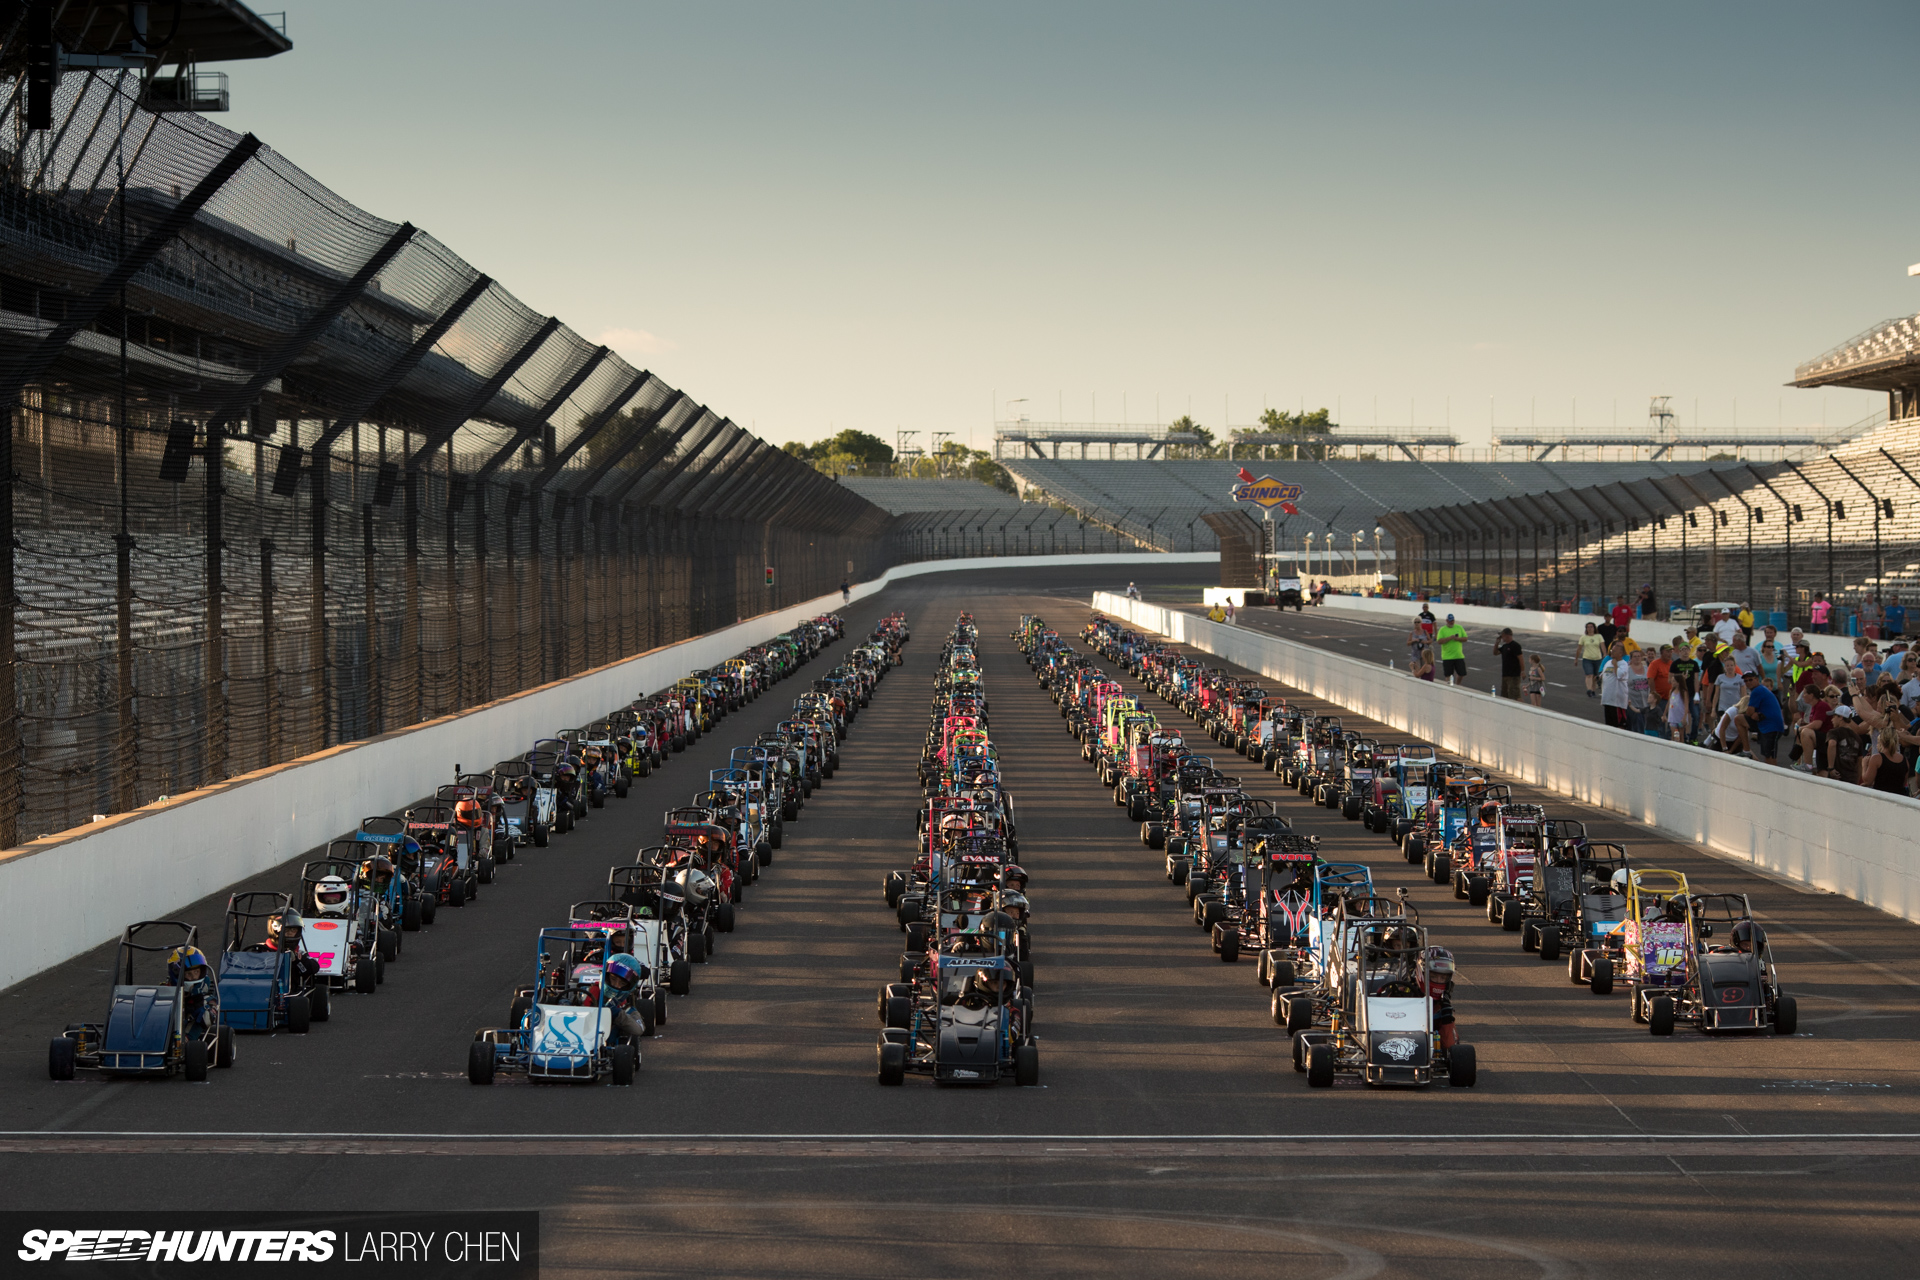 Quarter Midgets: Where Racing Careers Begin